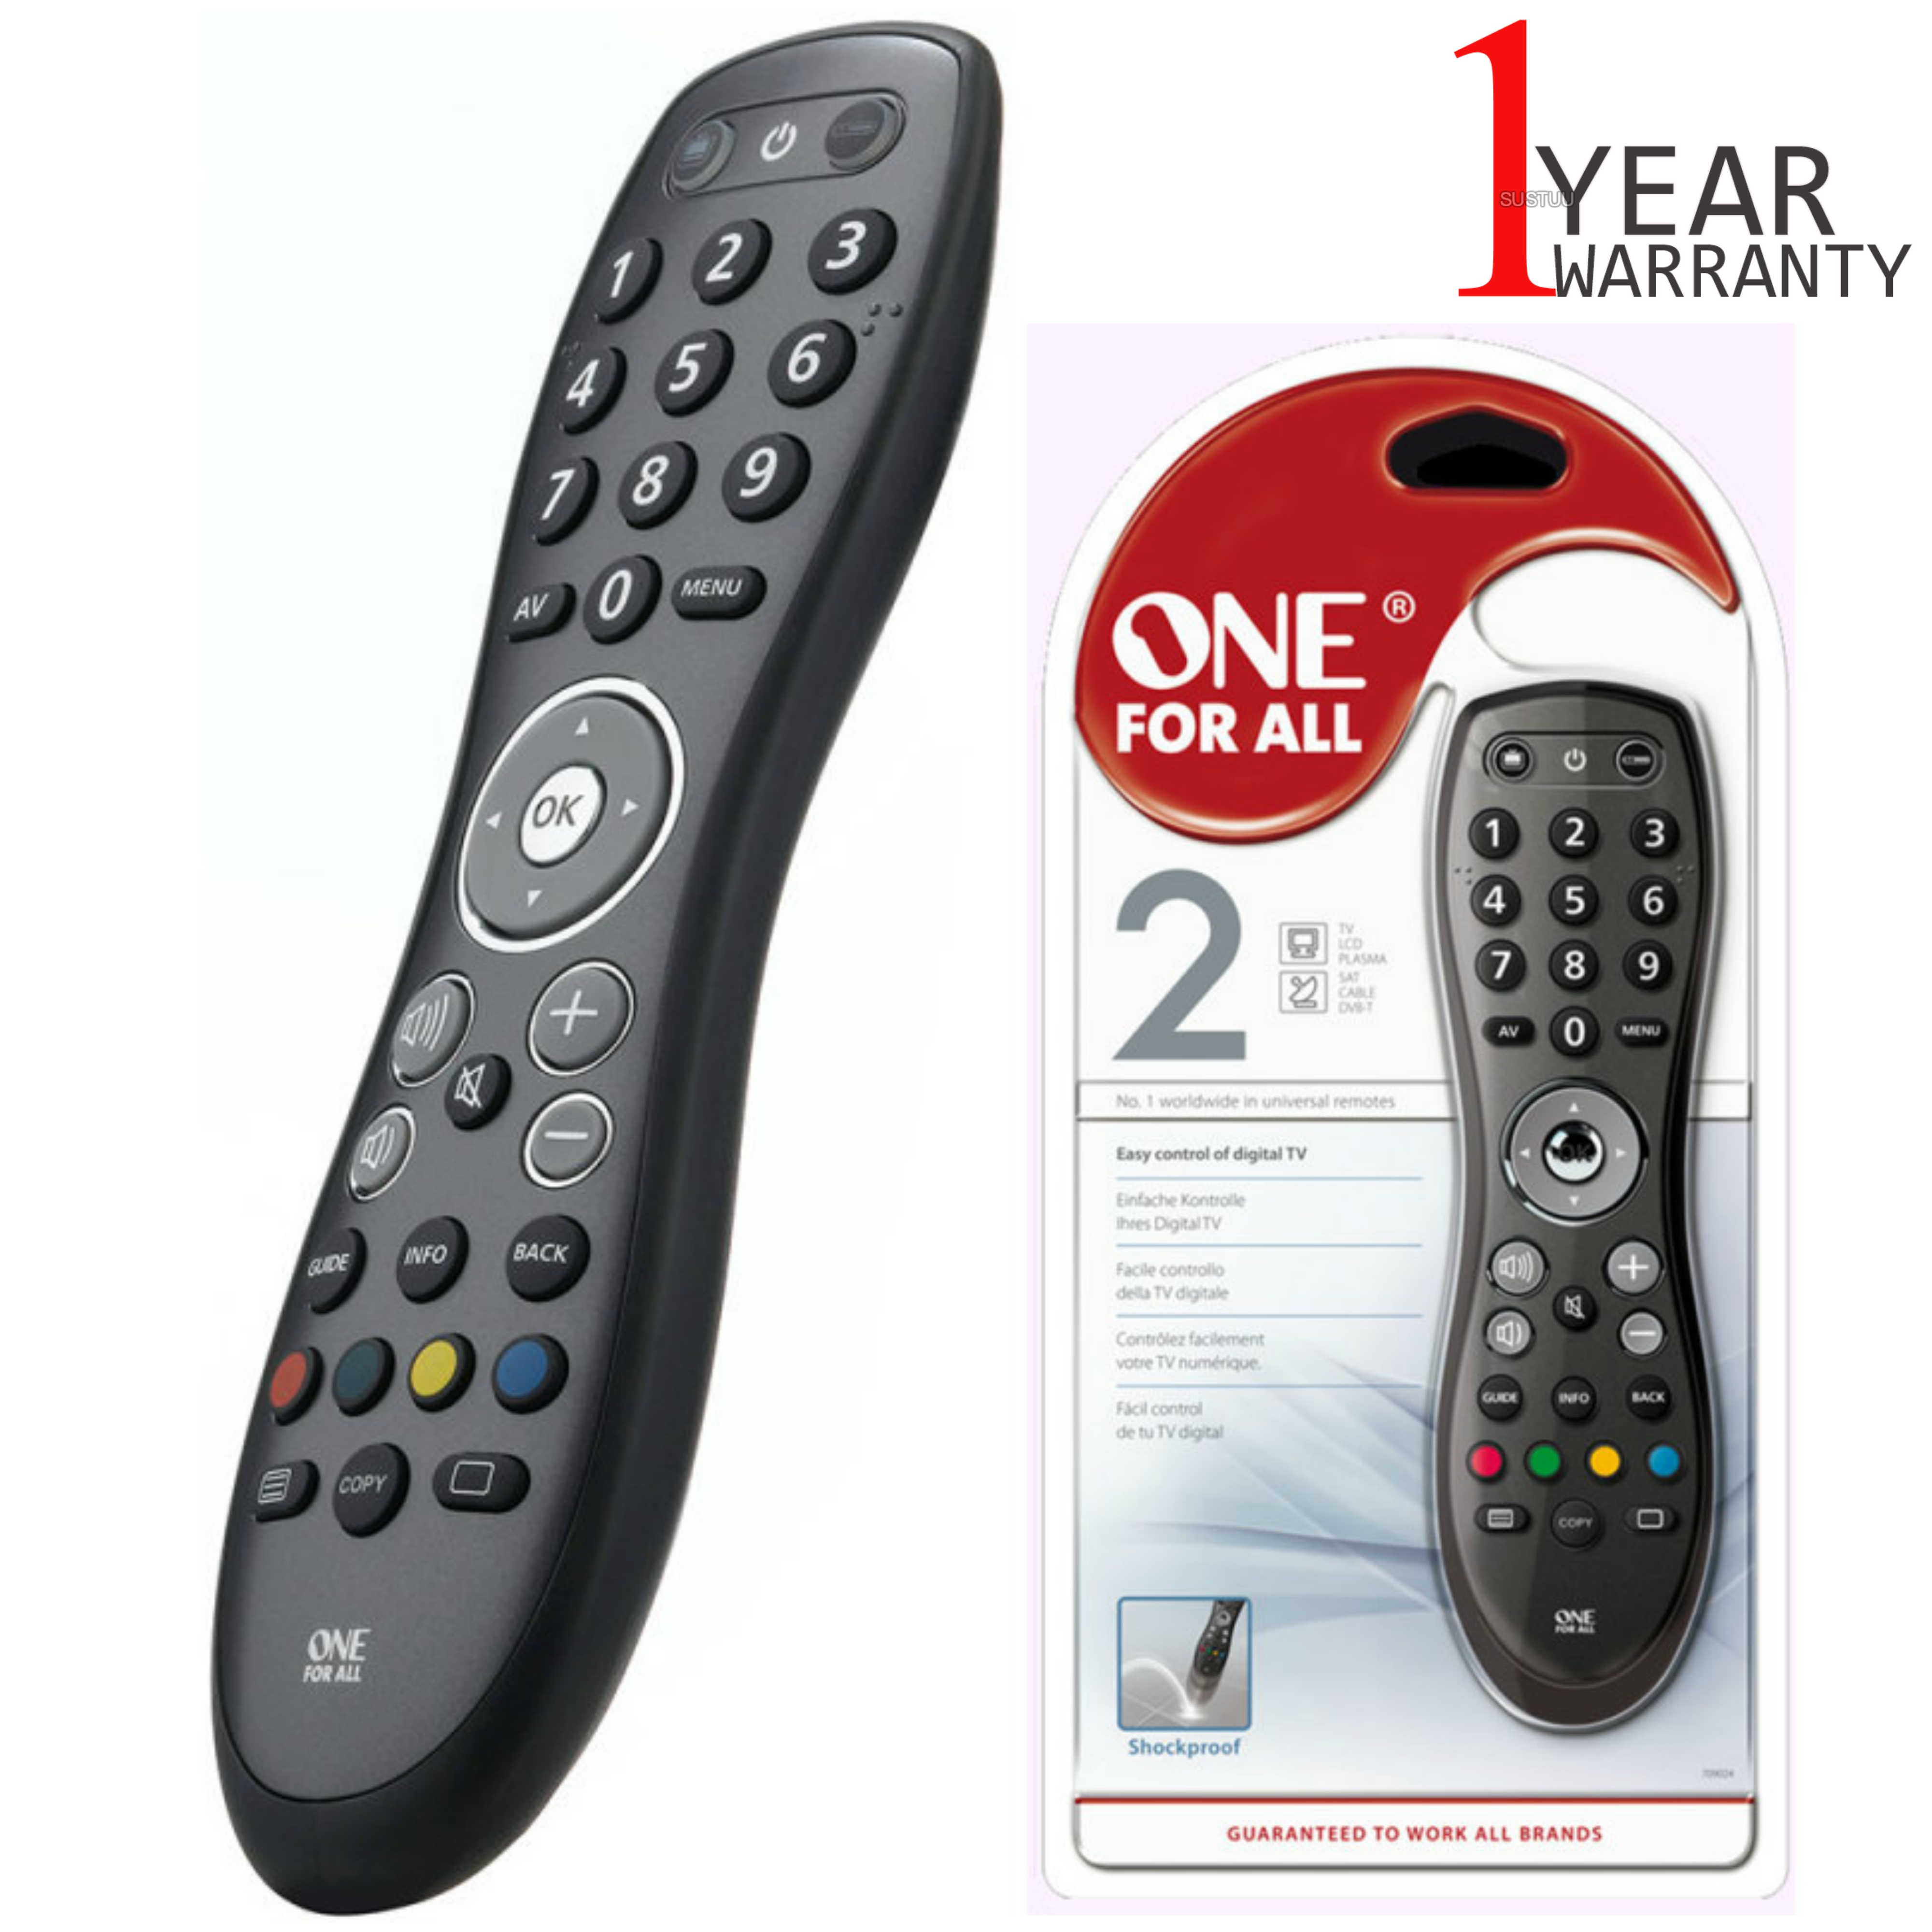 One For All Easy & Robust 2 in 1 TV Remote Control | Easy To Use | Black | URC6420 | NEW